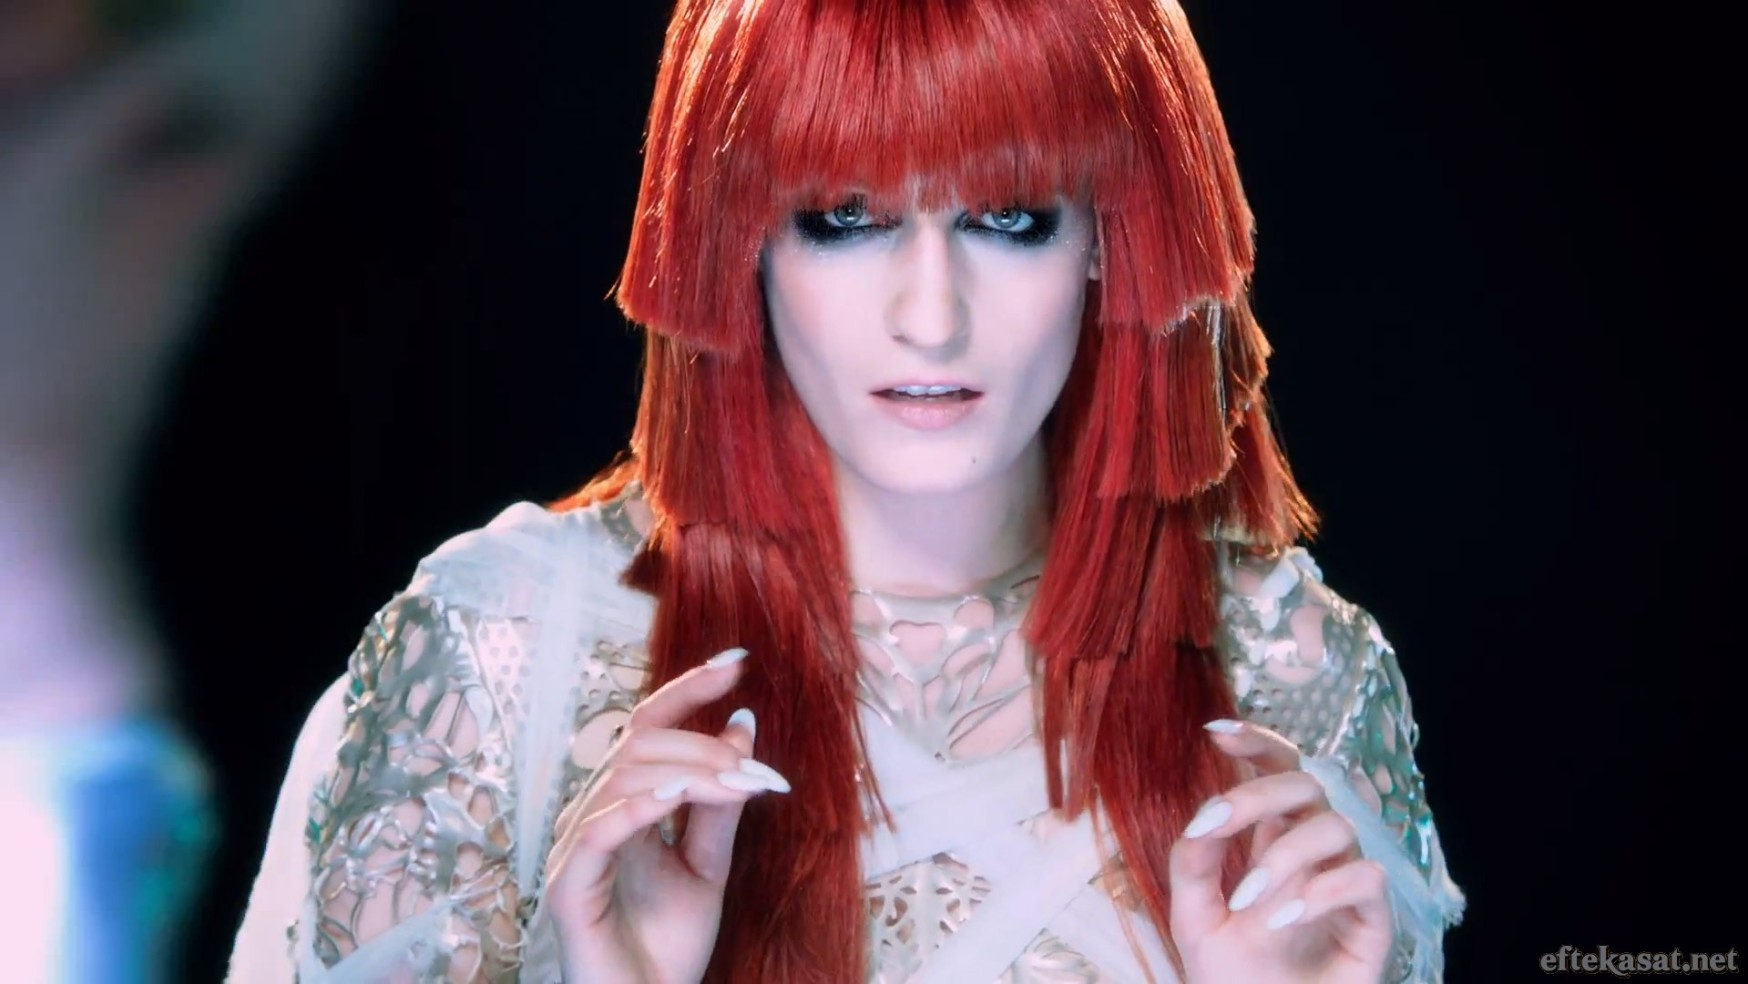 Over the Love: o novo tema de Florence + The Machine para o filme The Great Gatsby